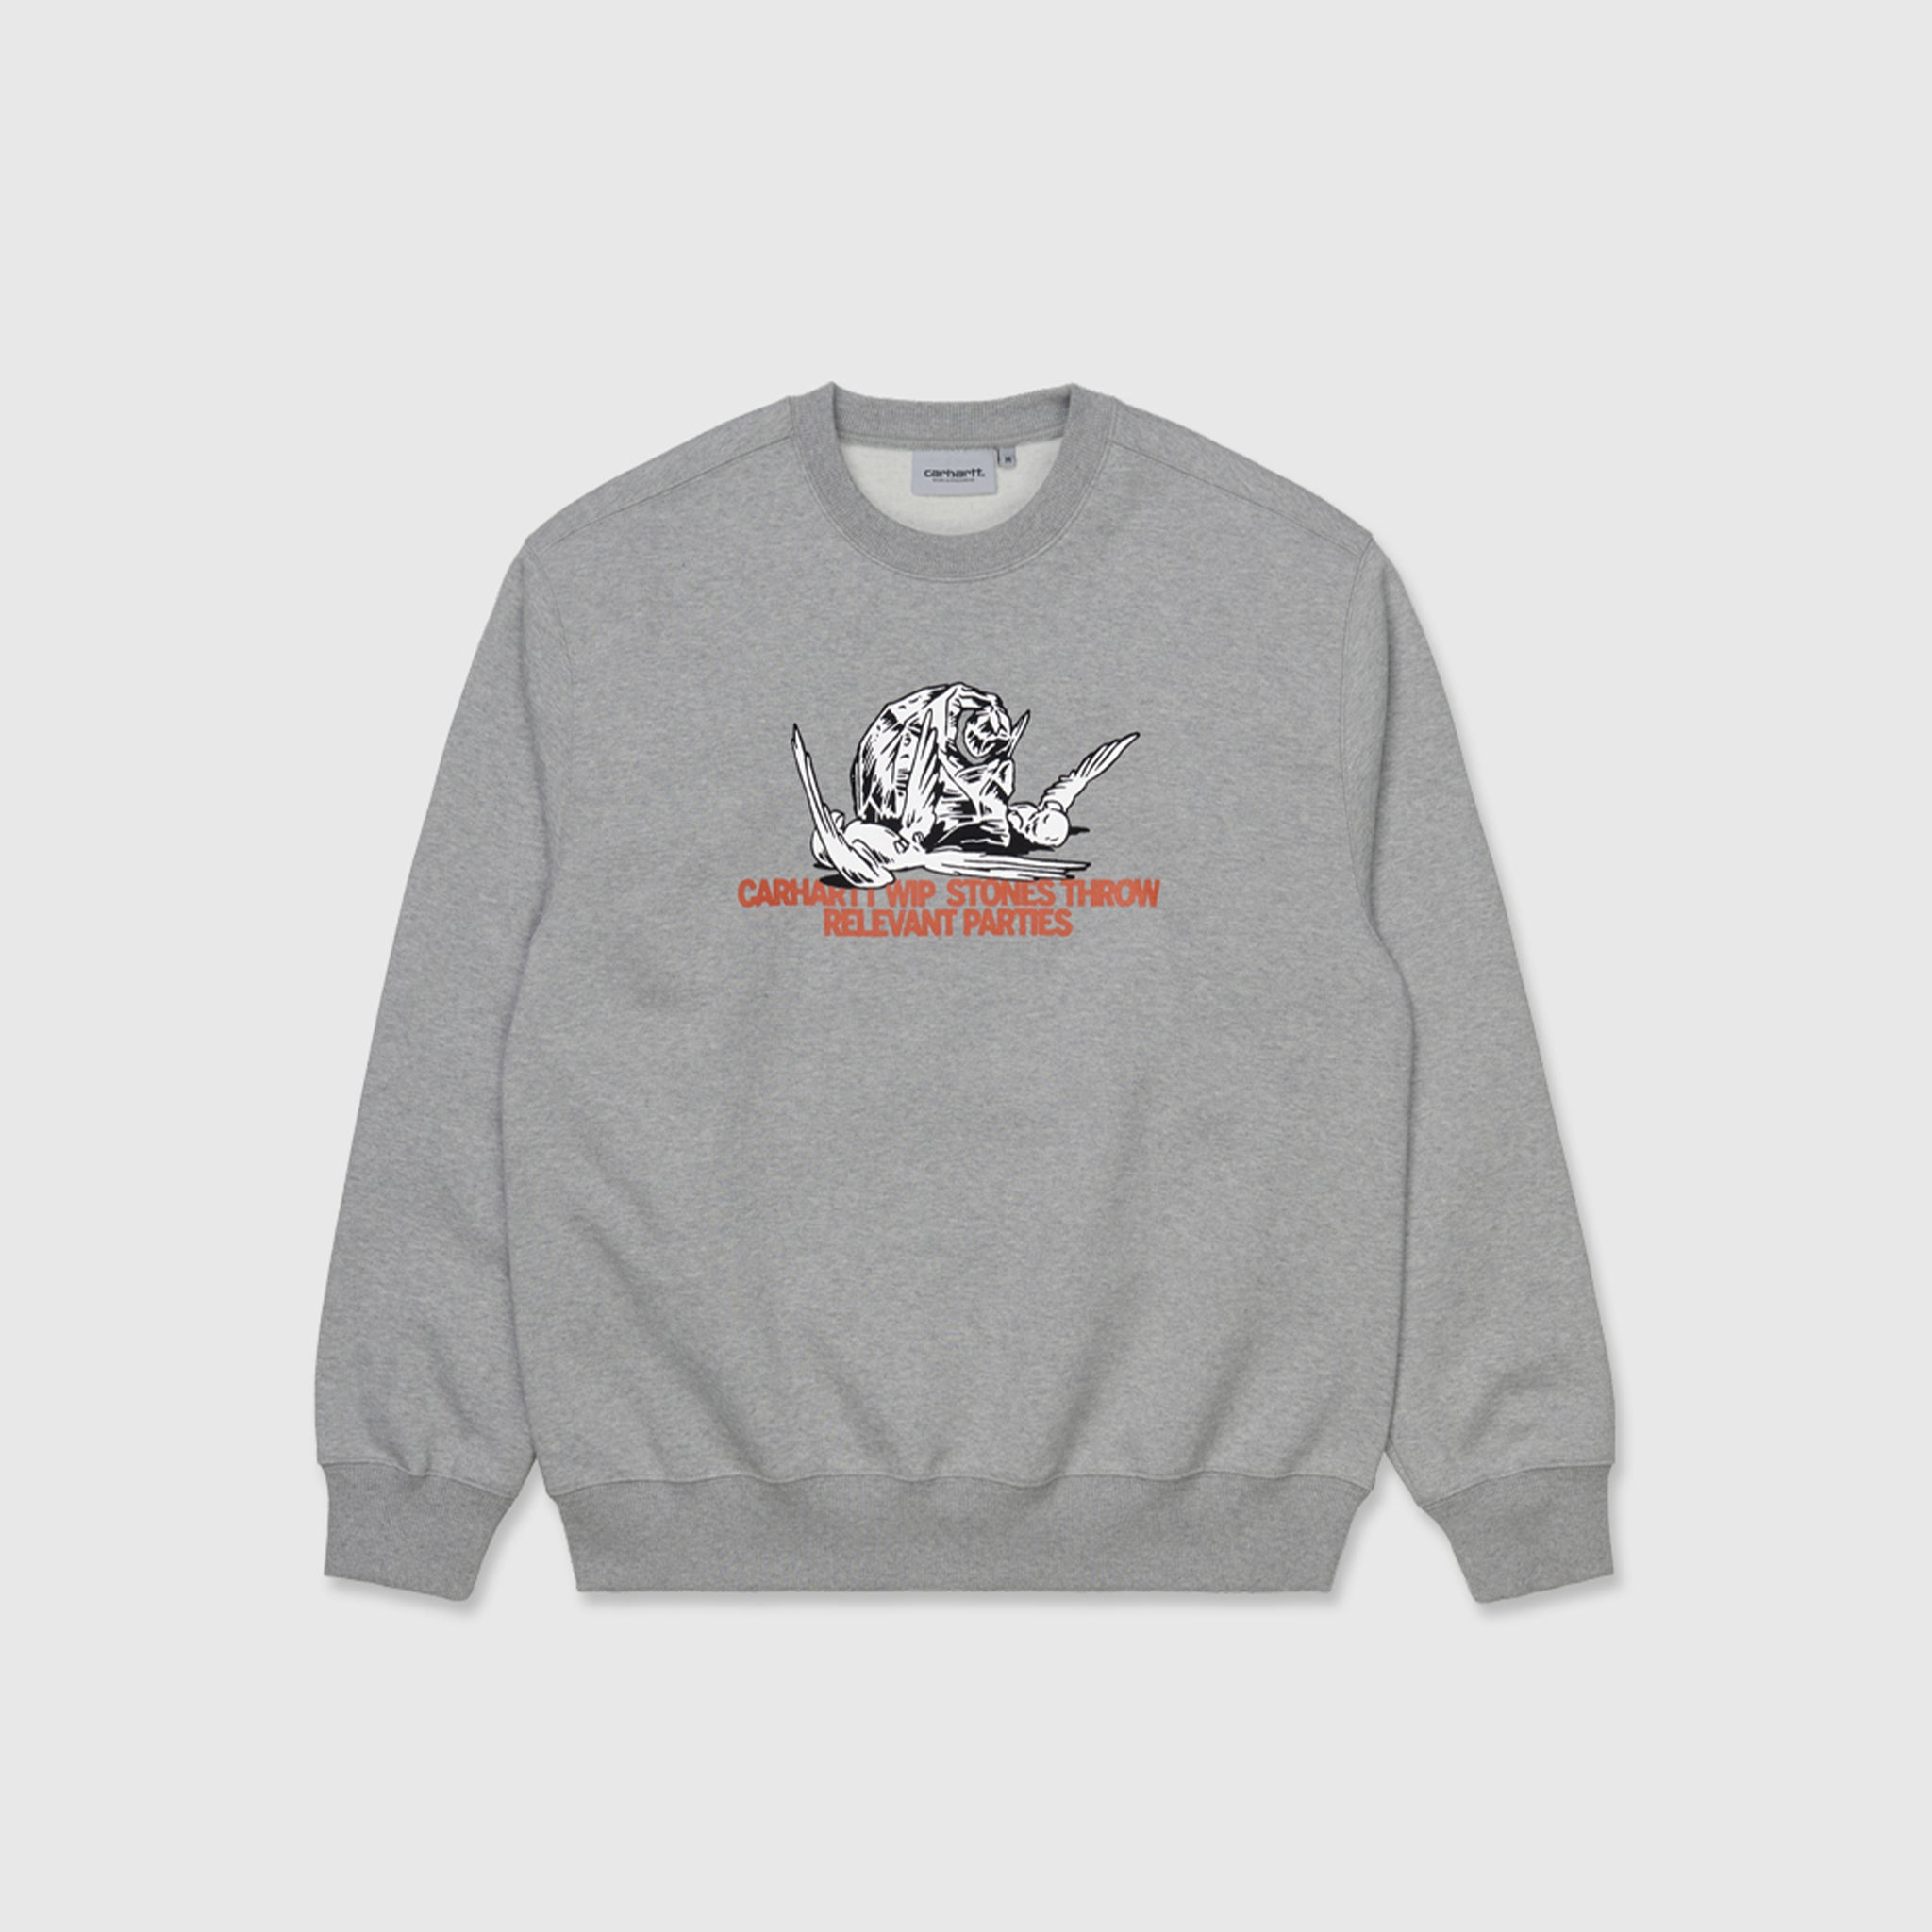 CARHARTT WIP X RELEVANT PARTIES STONES THROW CREWNECK SWEATSHIRT